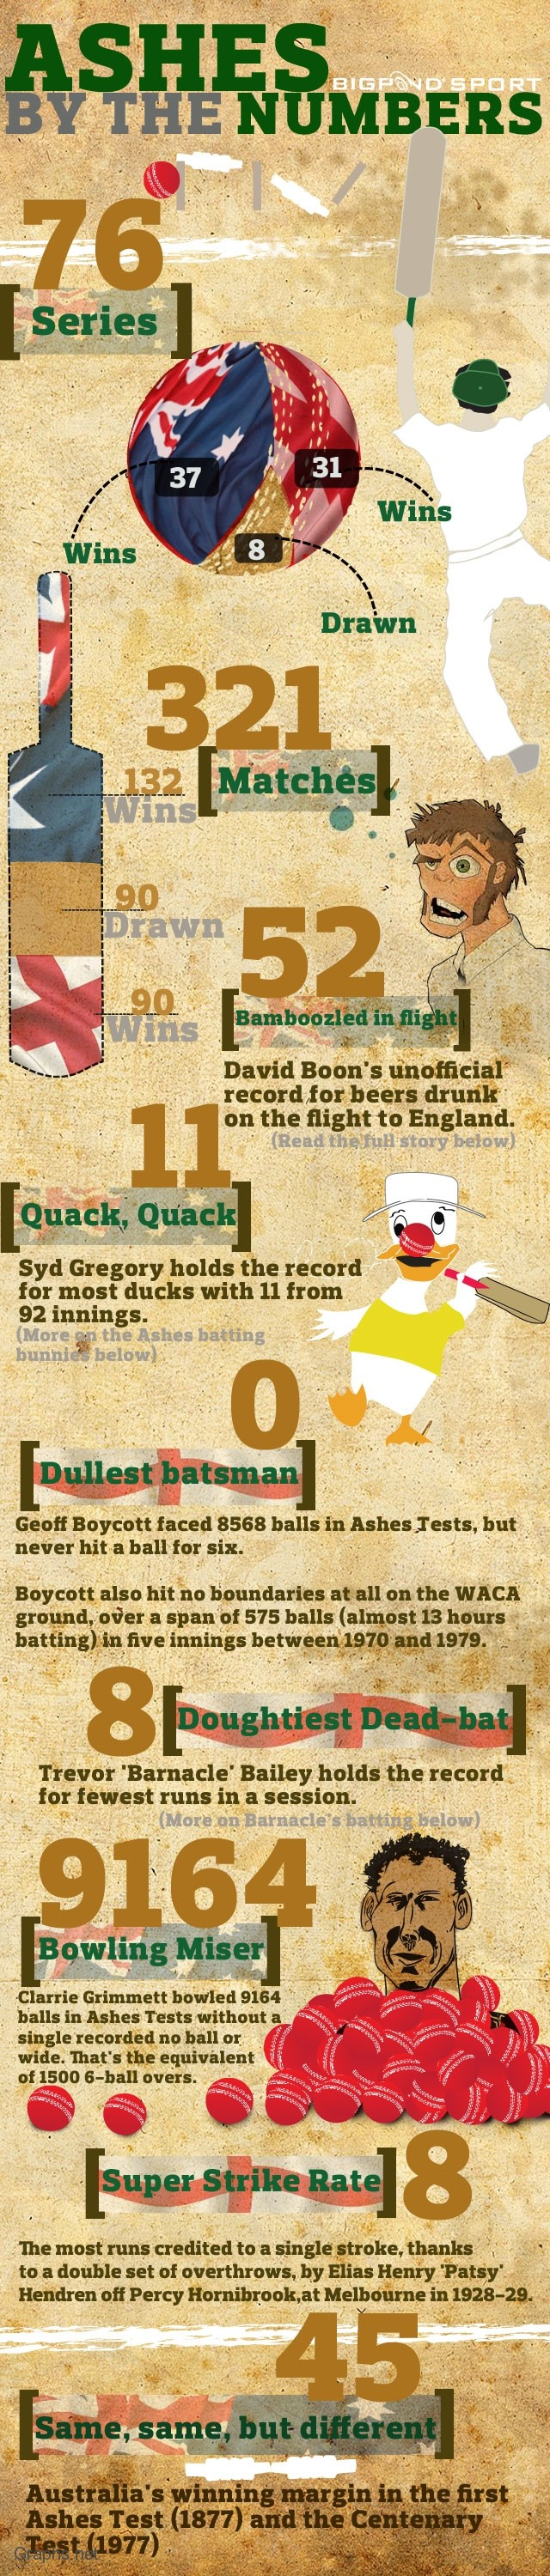 Ashes by the numbers